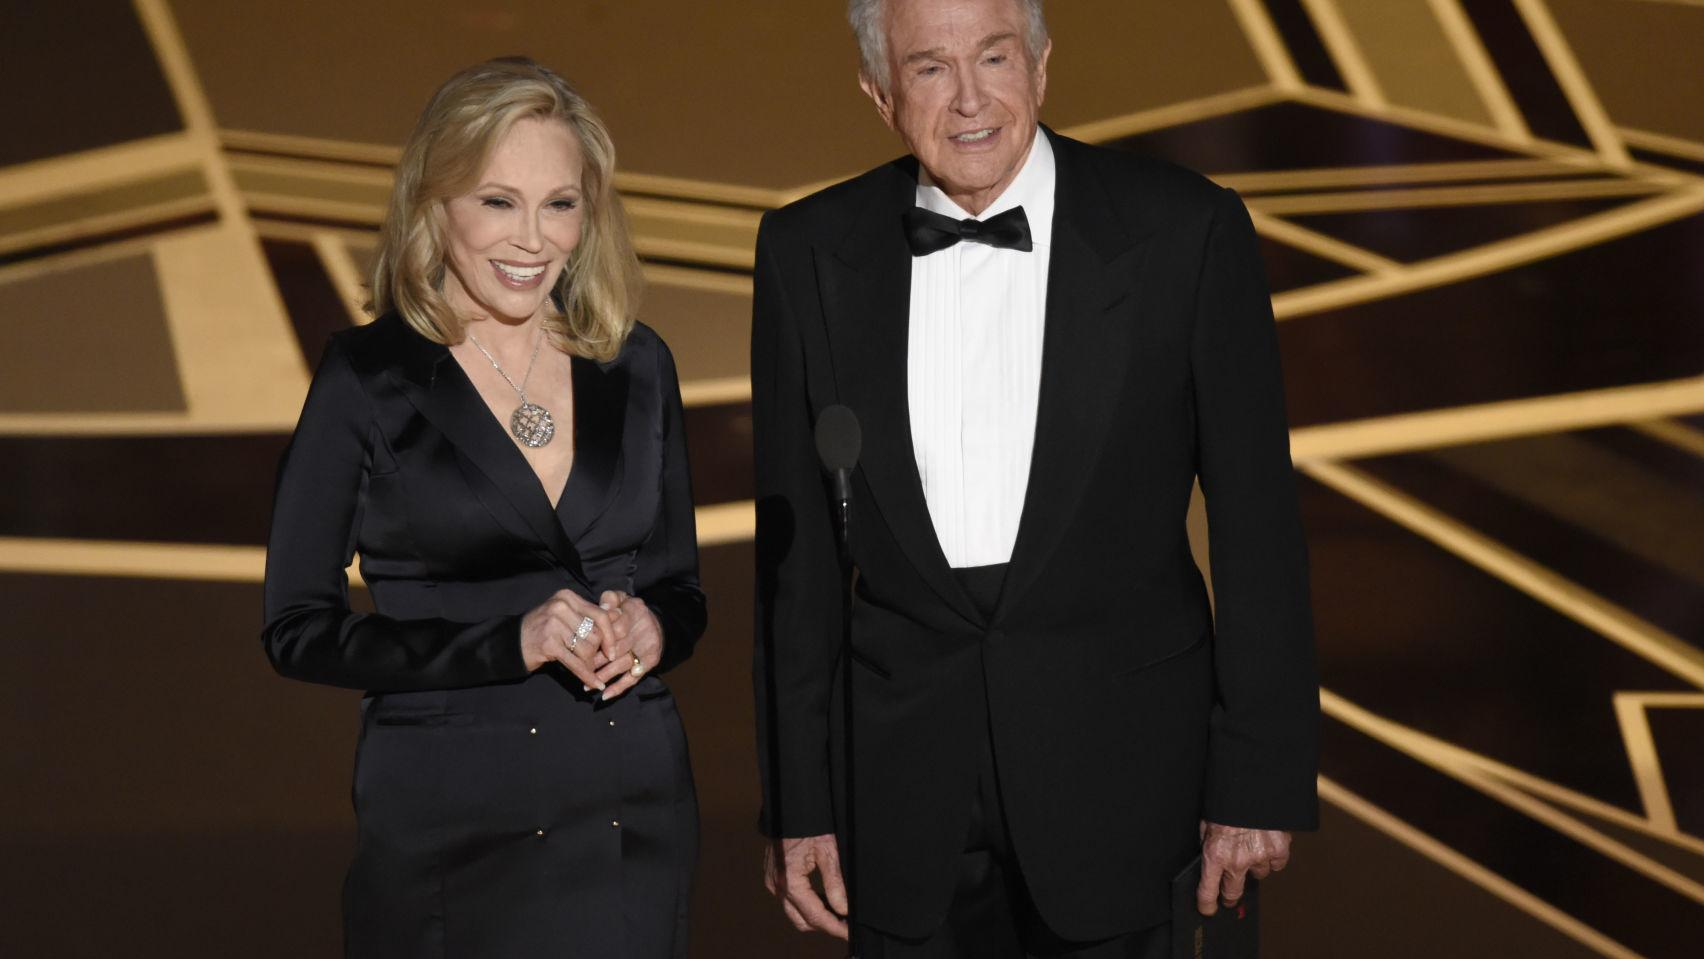 Oscars 2018: Memorable moments from the 90th annual Academy Awards, in photos